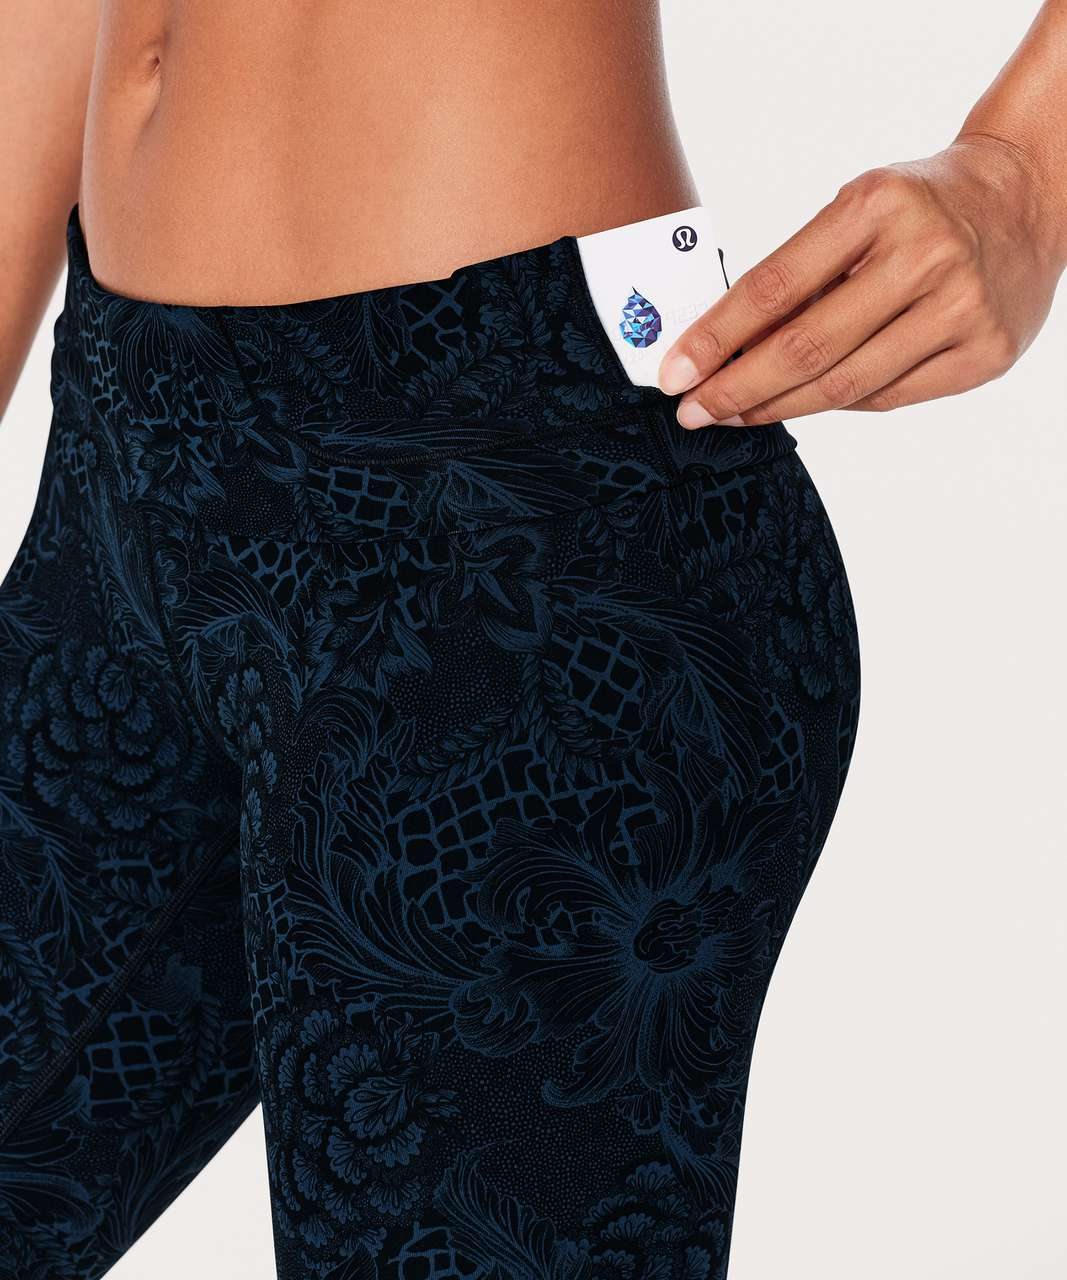 "Lululemon Wunder Under Hi-Rise 7/8 Tight (Full-On Luxtreme 25"") - Nouveau Mach Blue Black"